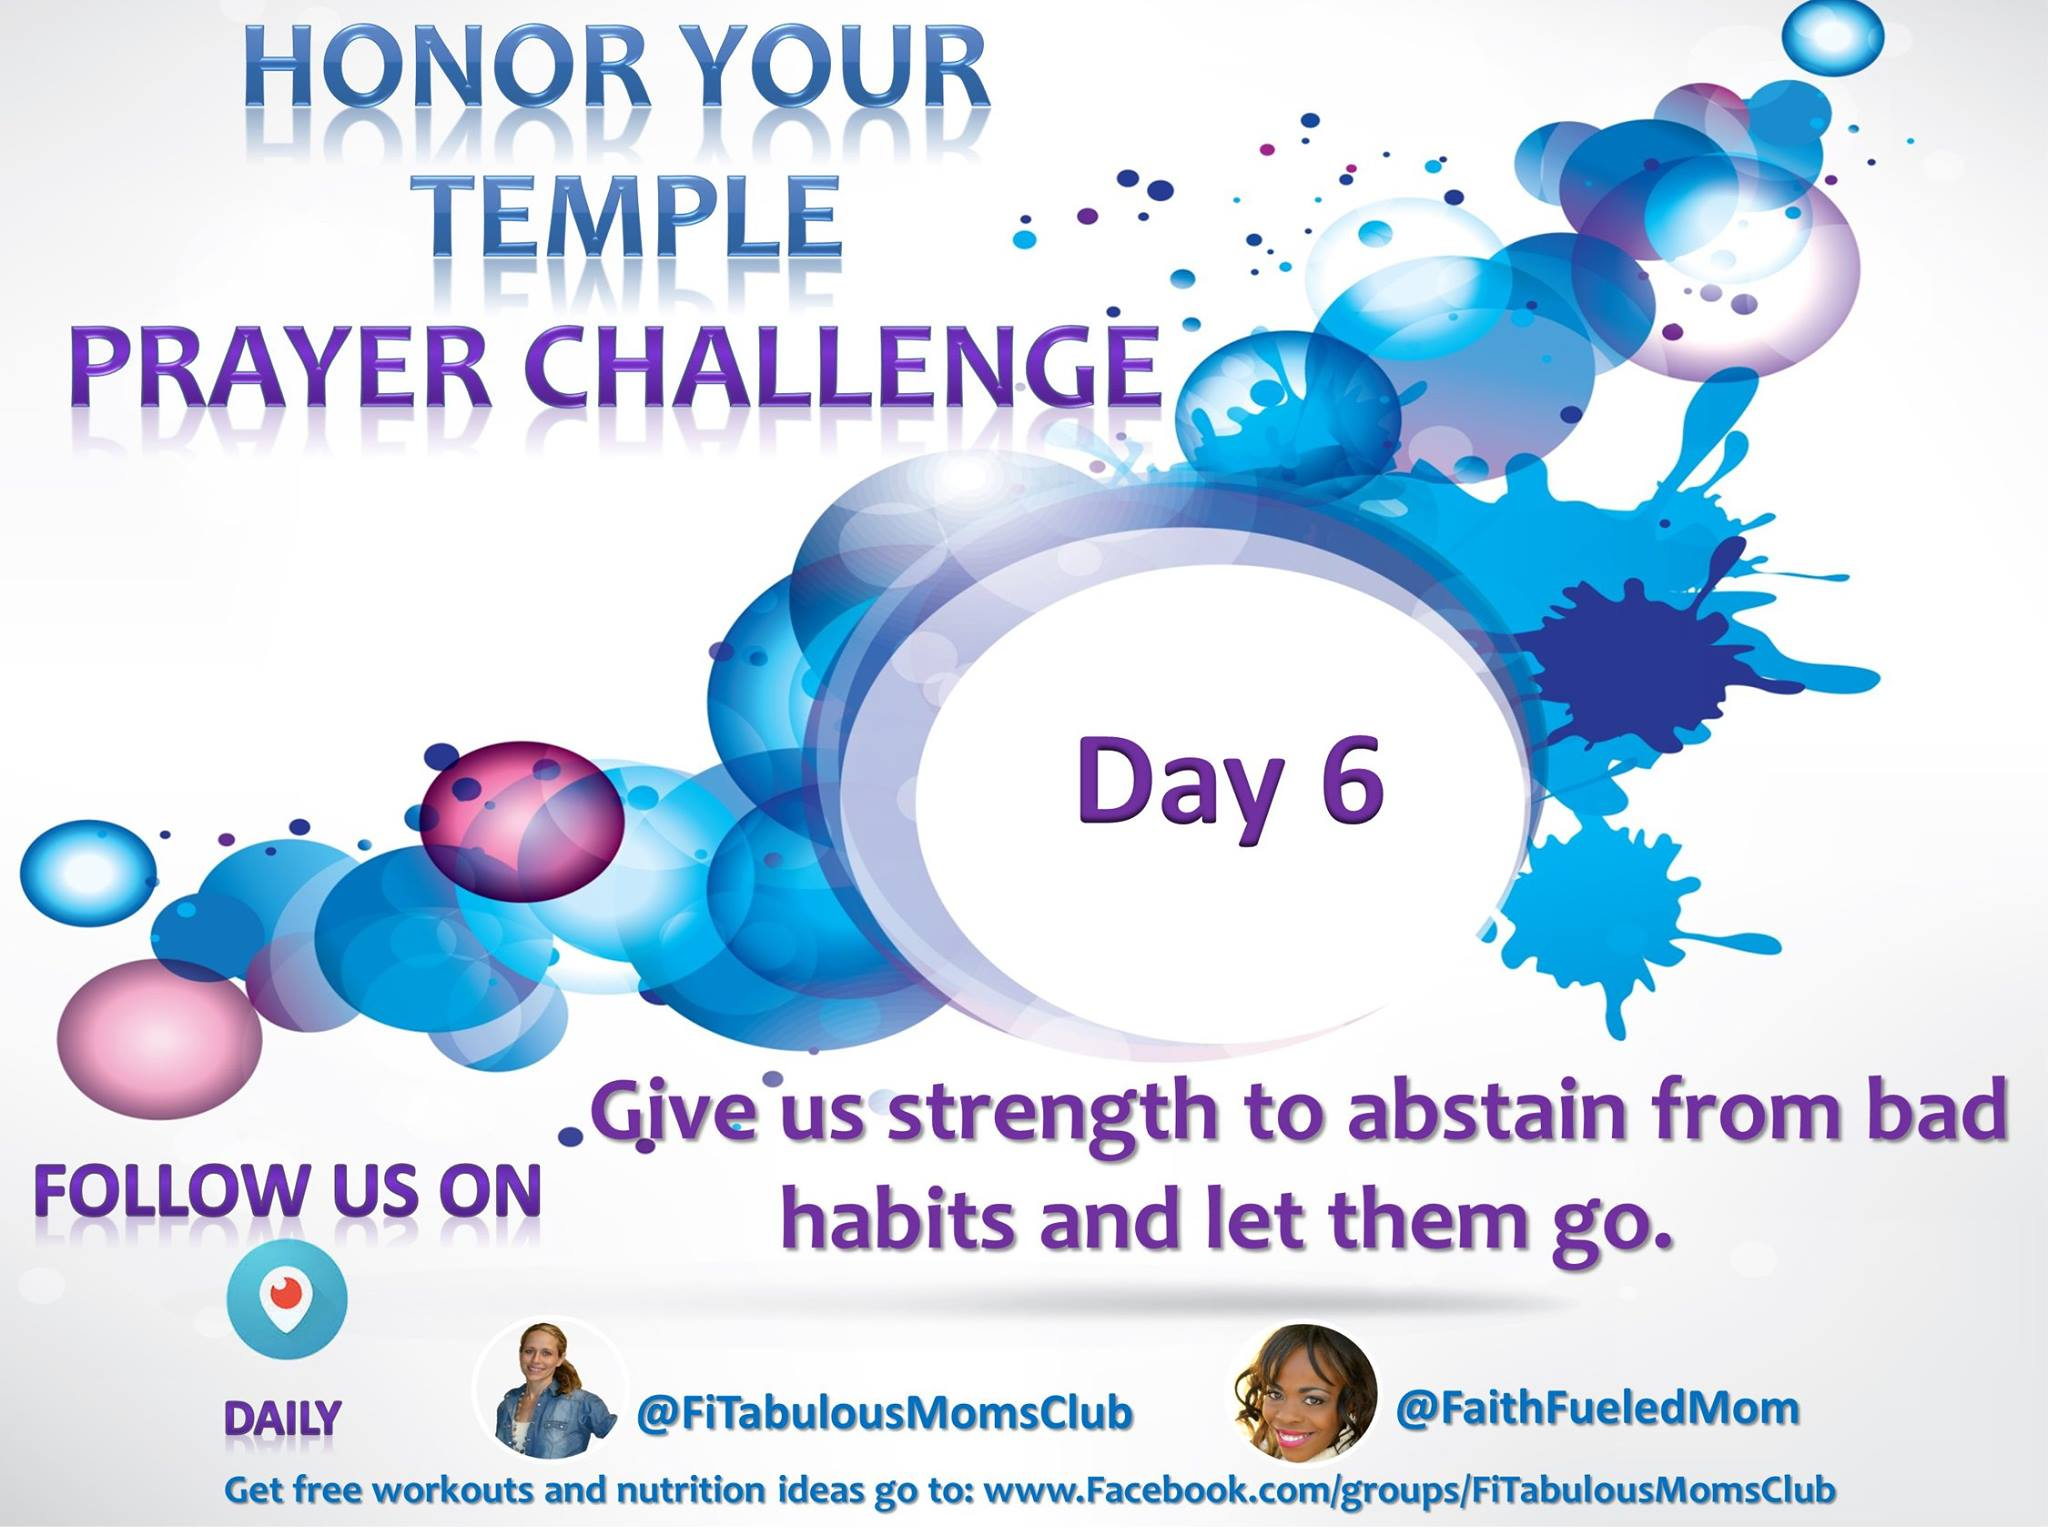 Day 6 & 7 Honor Your Temple Prayer Challenge